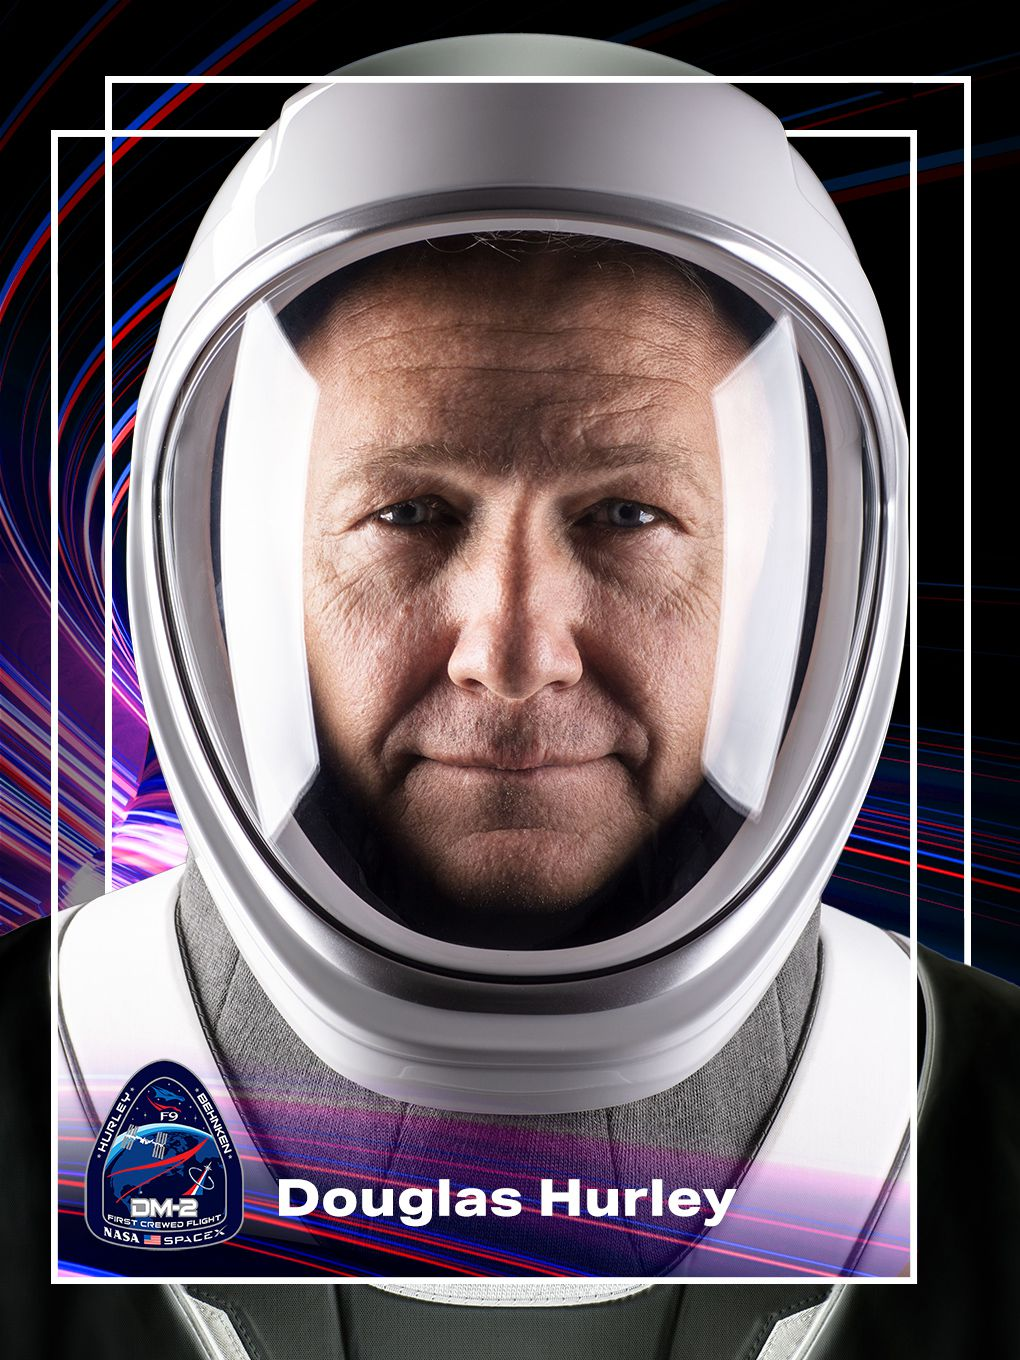 A graphic of astronaut Douglas Hurley made to look like the front of a trading card